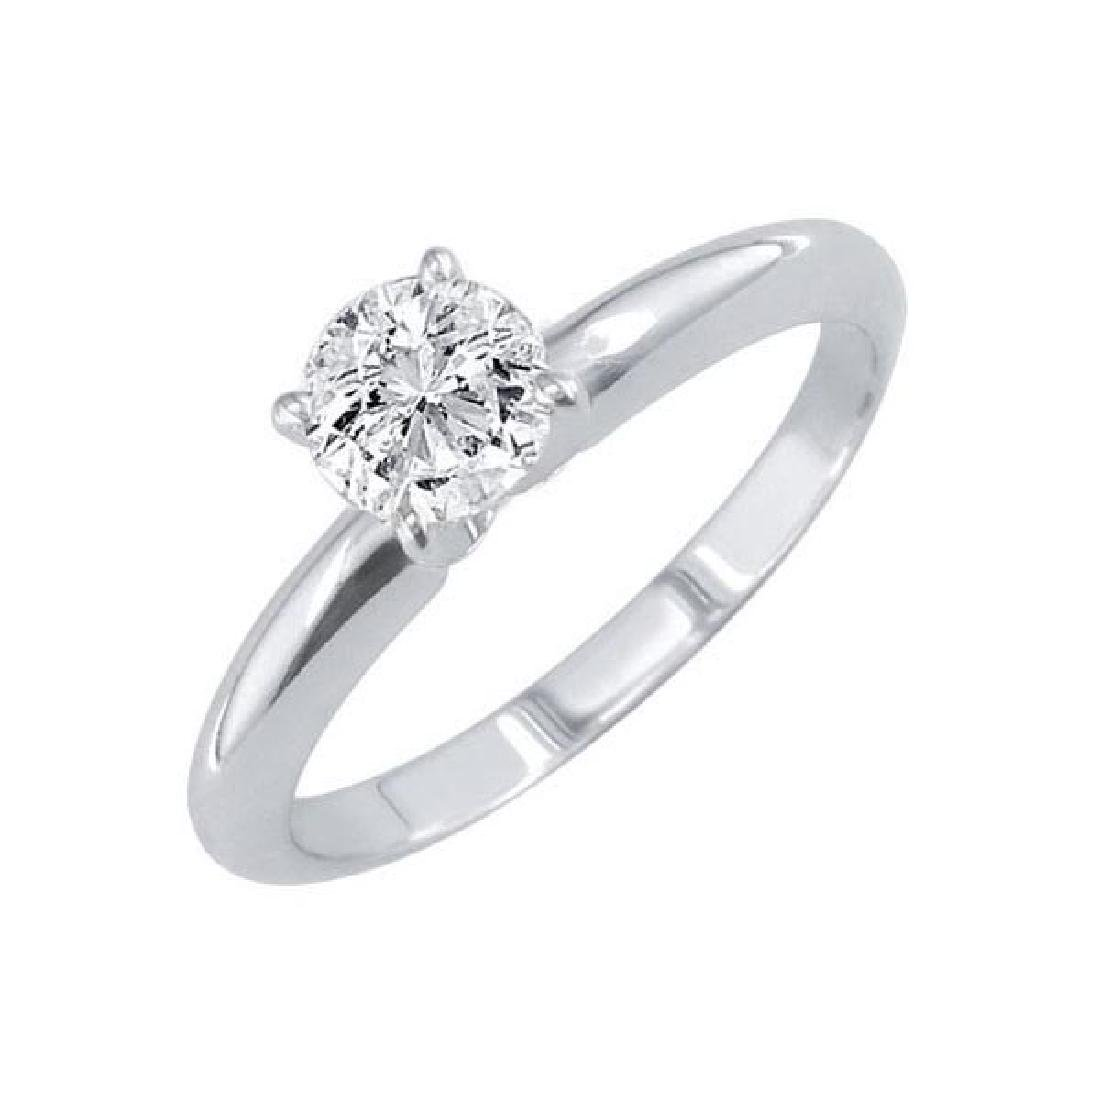 Certified 1.14 CTW Round Diamond Solitaire 14k Ring E/I